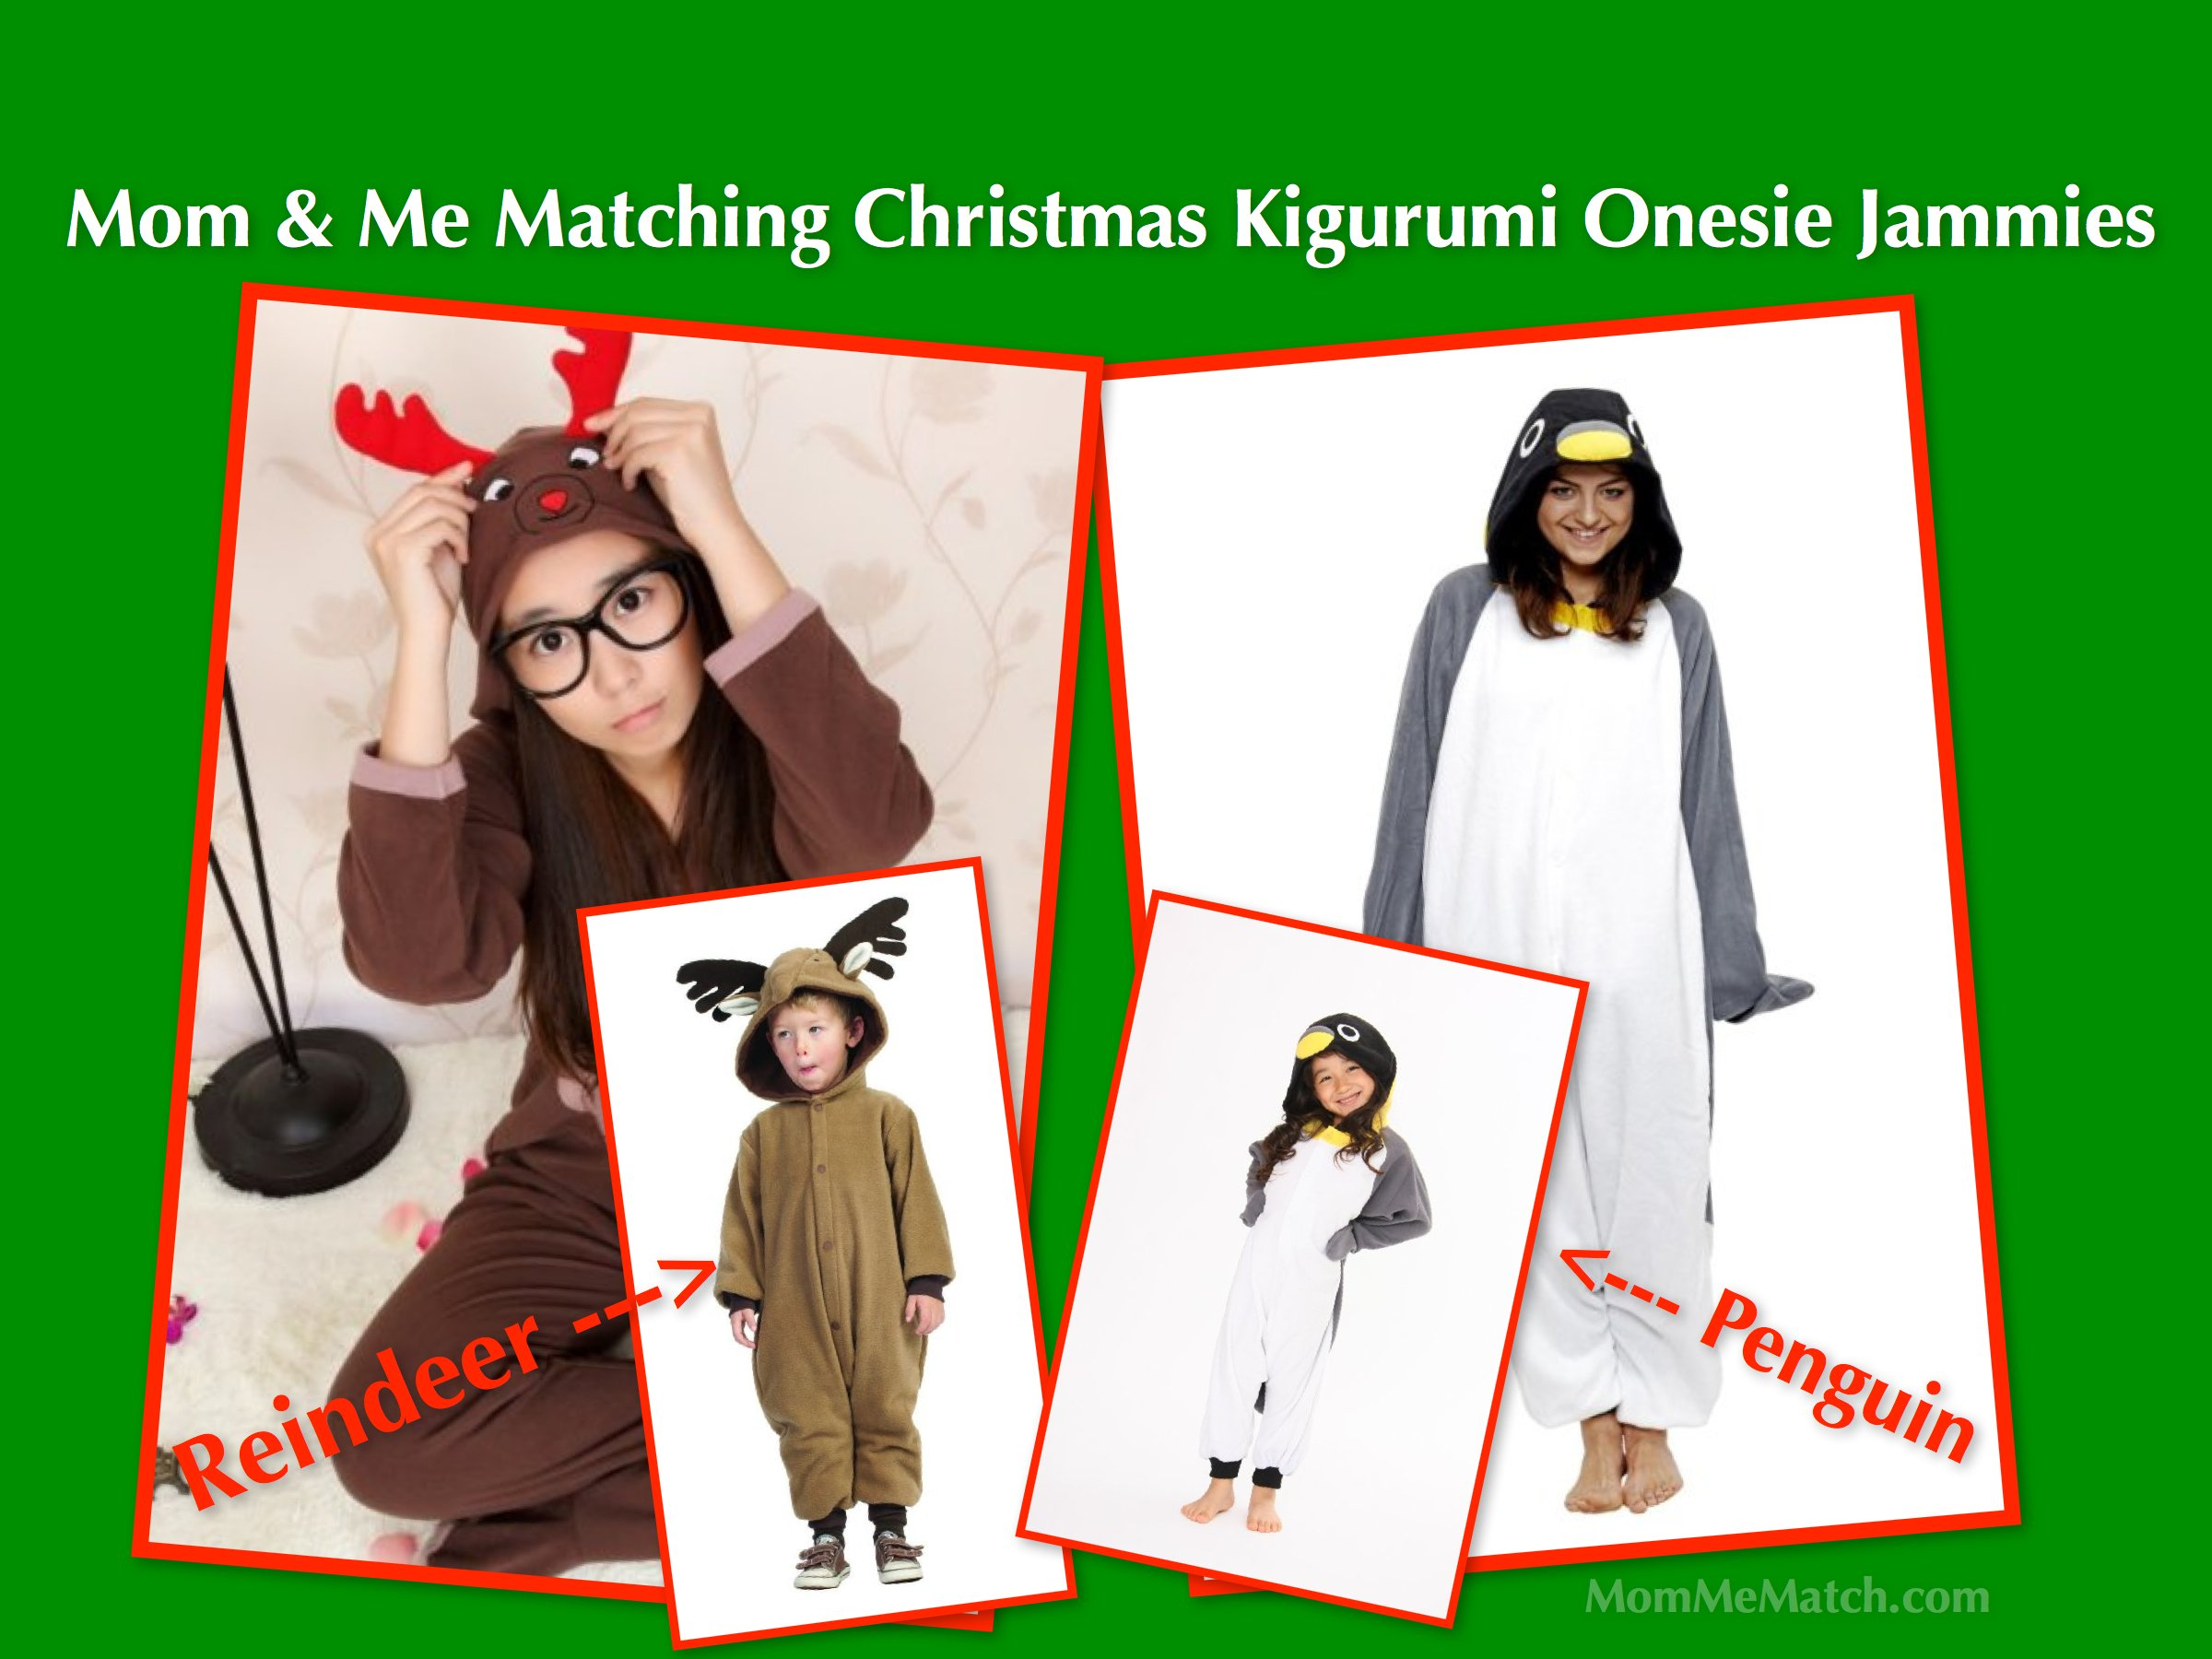 Mom & Me Matching Christmas Kigurumi Onesie Jammies